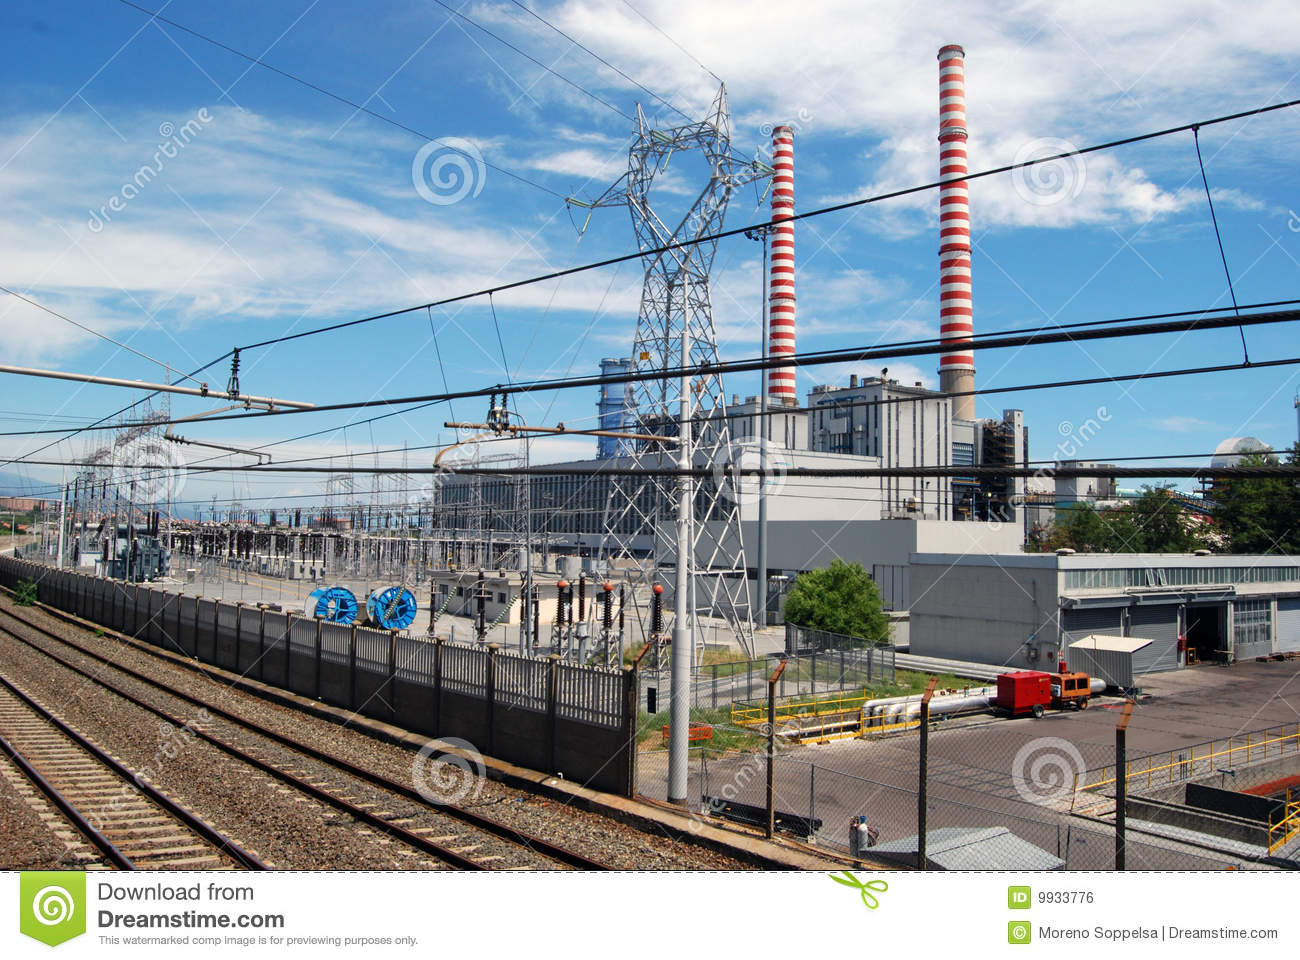 Thermal power station - Coal